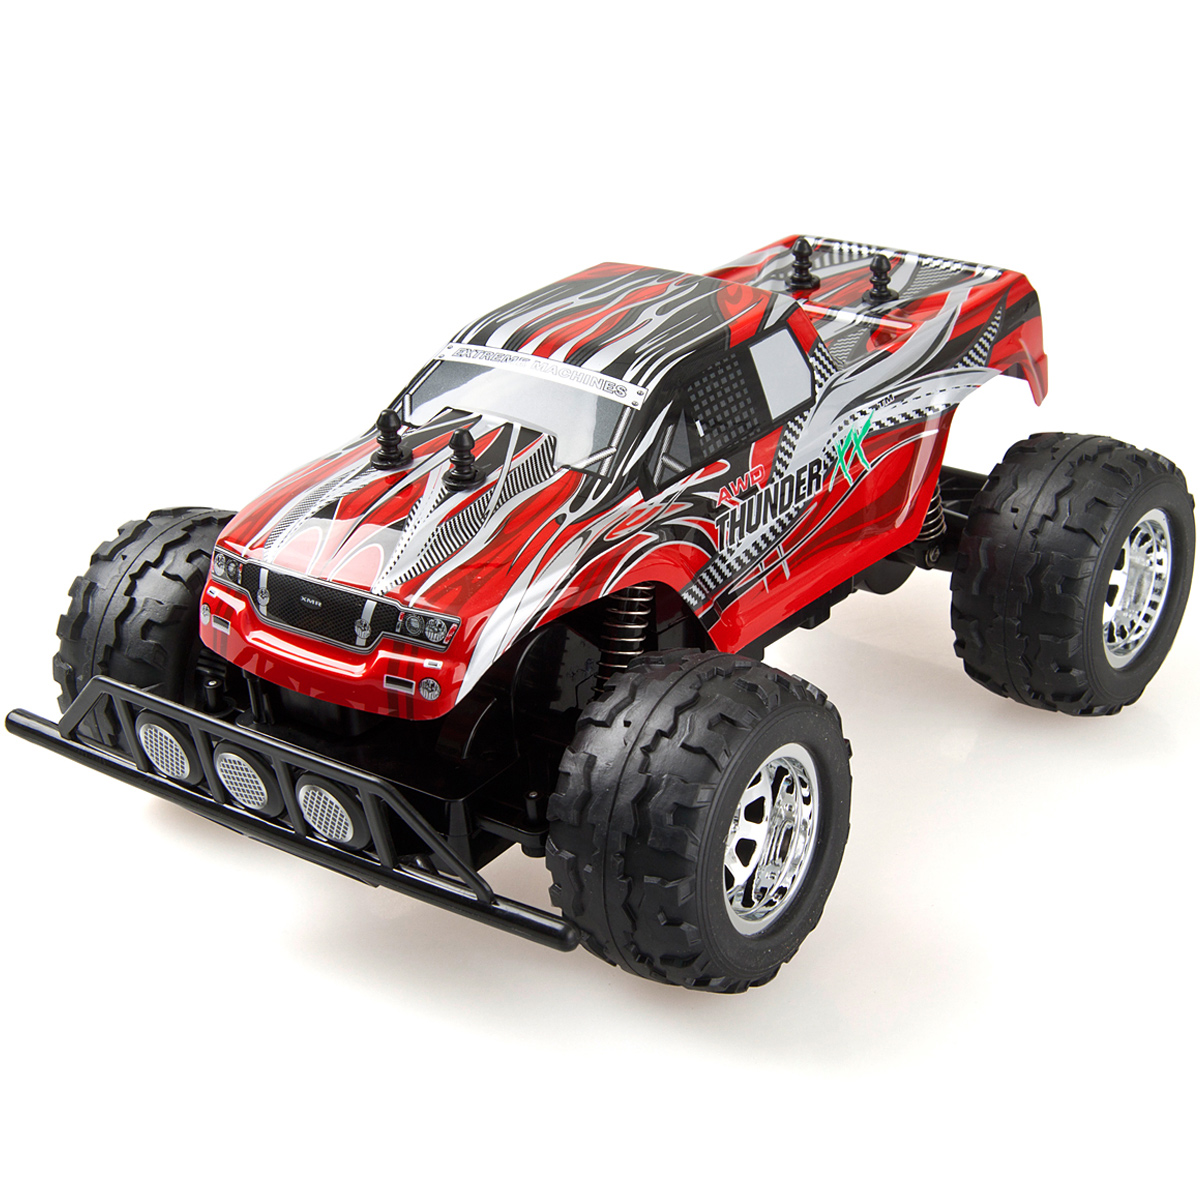 free rc drift cars with 712315752 on 32453339977 furthermore Ford Mustang Drift Ken Block also LicensedMercedesBenzSLSAMG112ElectricRTRRCCar besides Watch further Hsp Troian Pro 1 16 Scale Brushless Electric Off Road Rc Buggy P395.